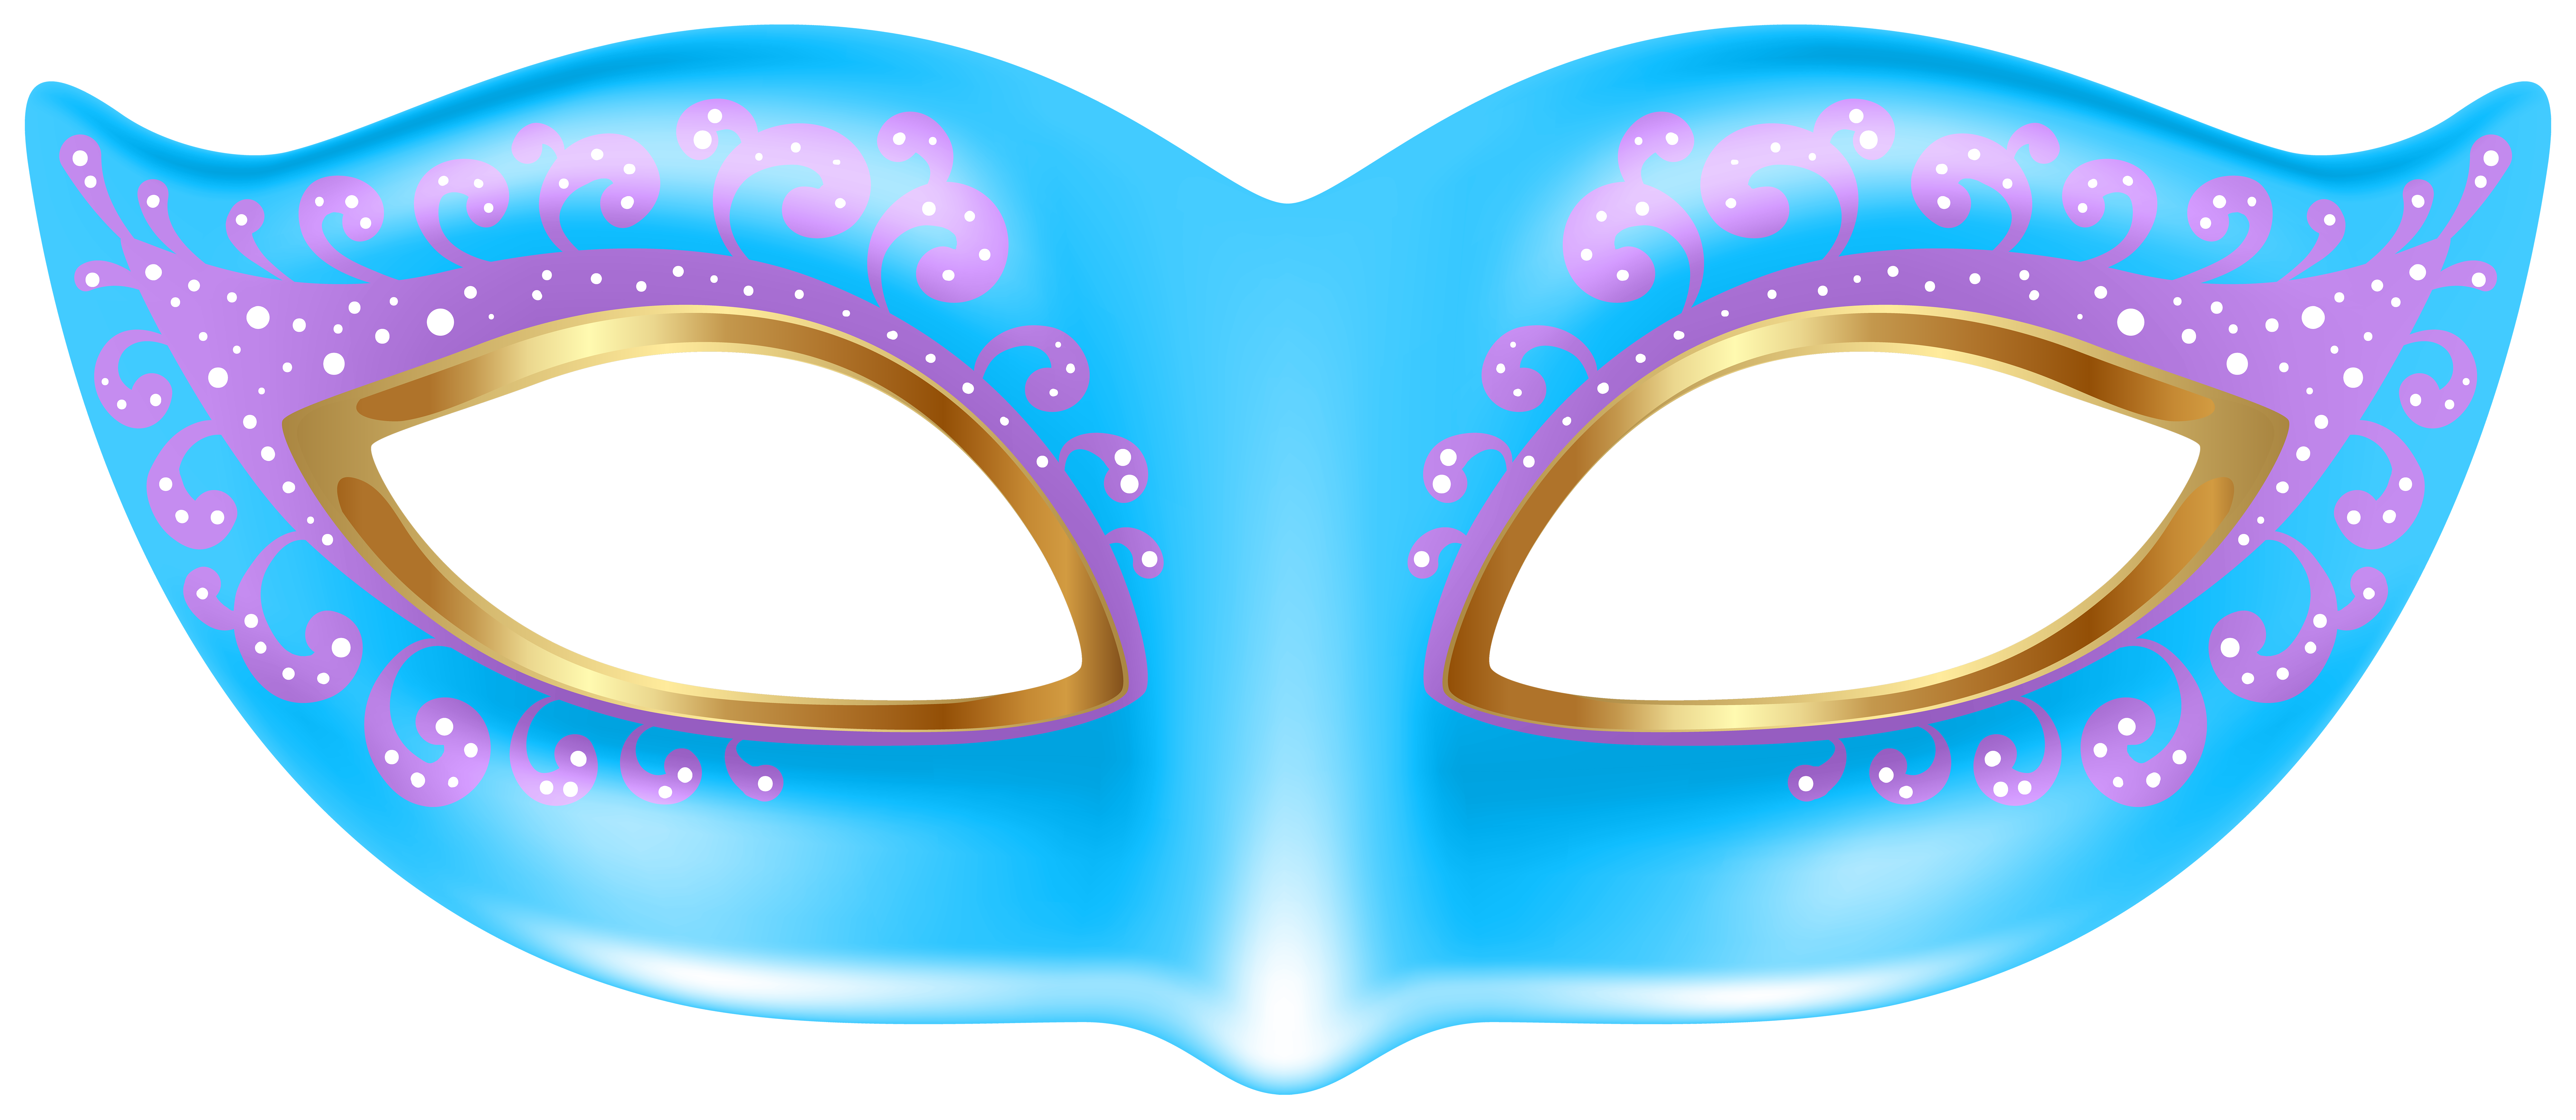 Cat mask clipart png royalty free stock Face Mask Clipart at GetDrawings.com | Free for personal use Face ... png royalty free stock